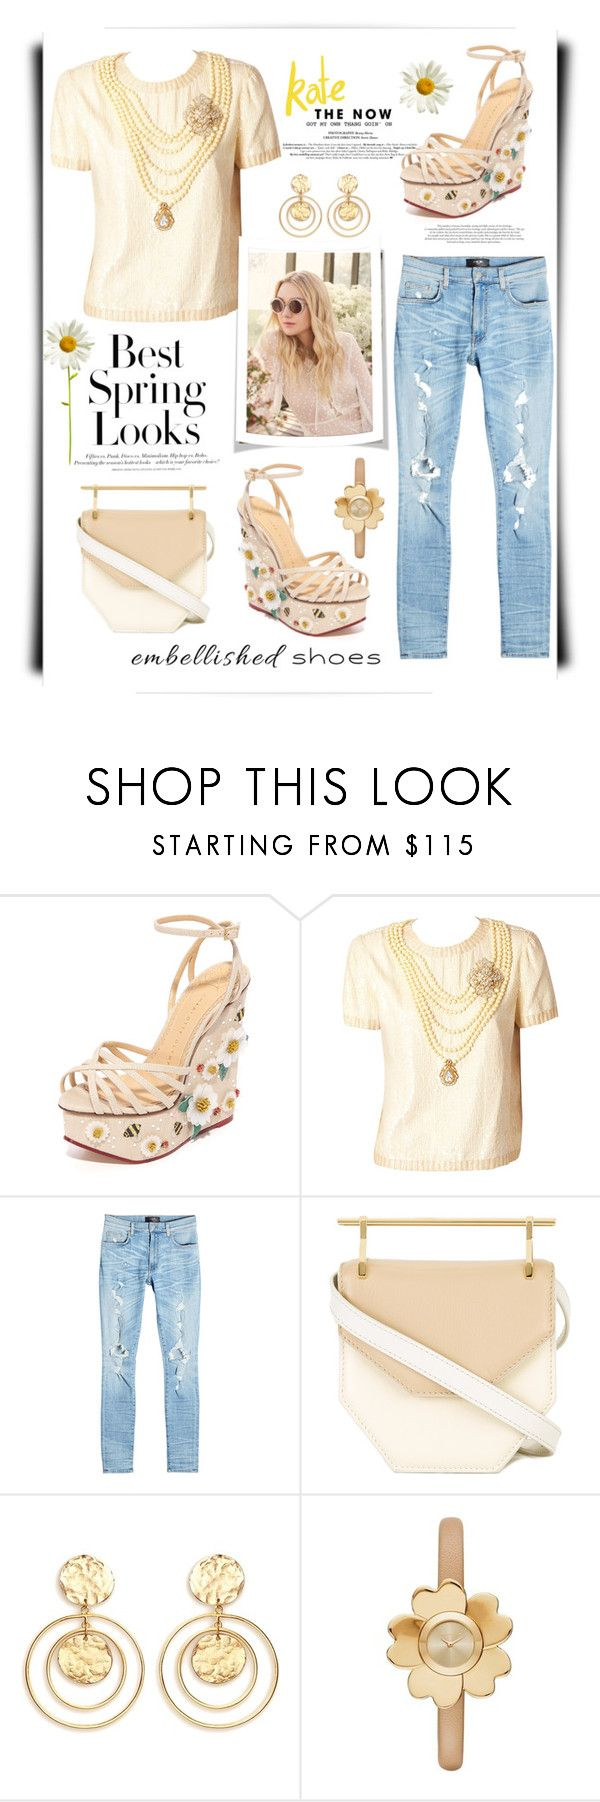 """Spring Fling"" by terry-tlc ❤ liked on Polyvore featuring Charlotte Olympia, Bill Blass, Jimmy Choo, AMIRI, H&M, M2Malletier, Kenneth Jay Lane and Michael Kors"